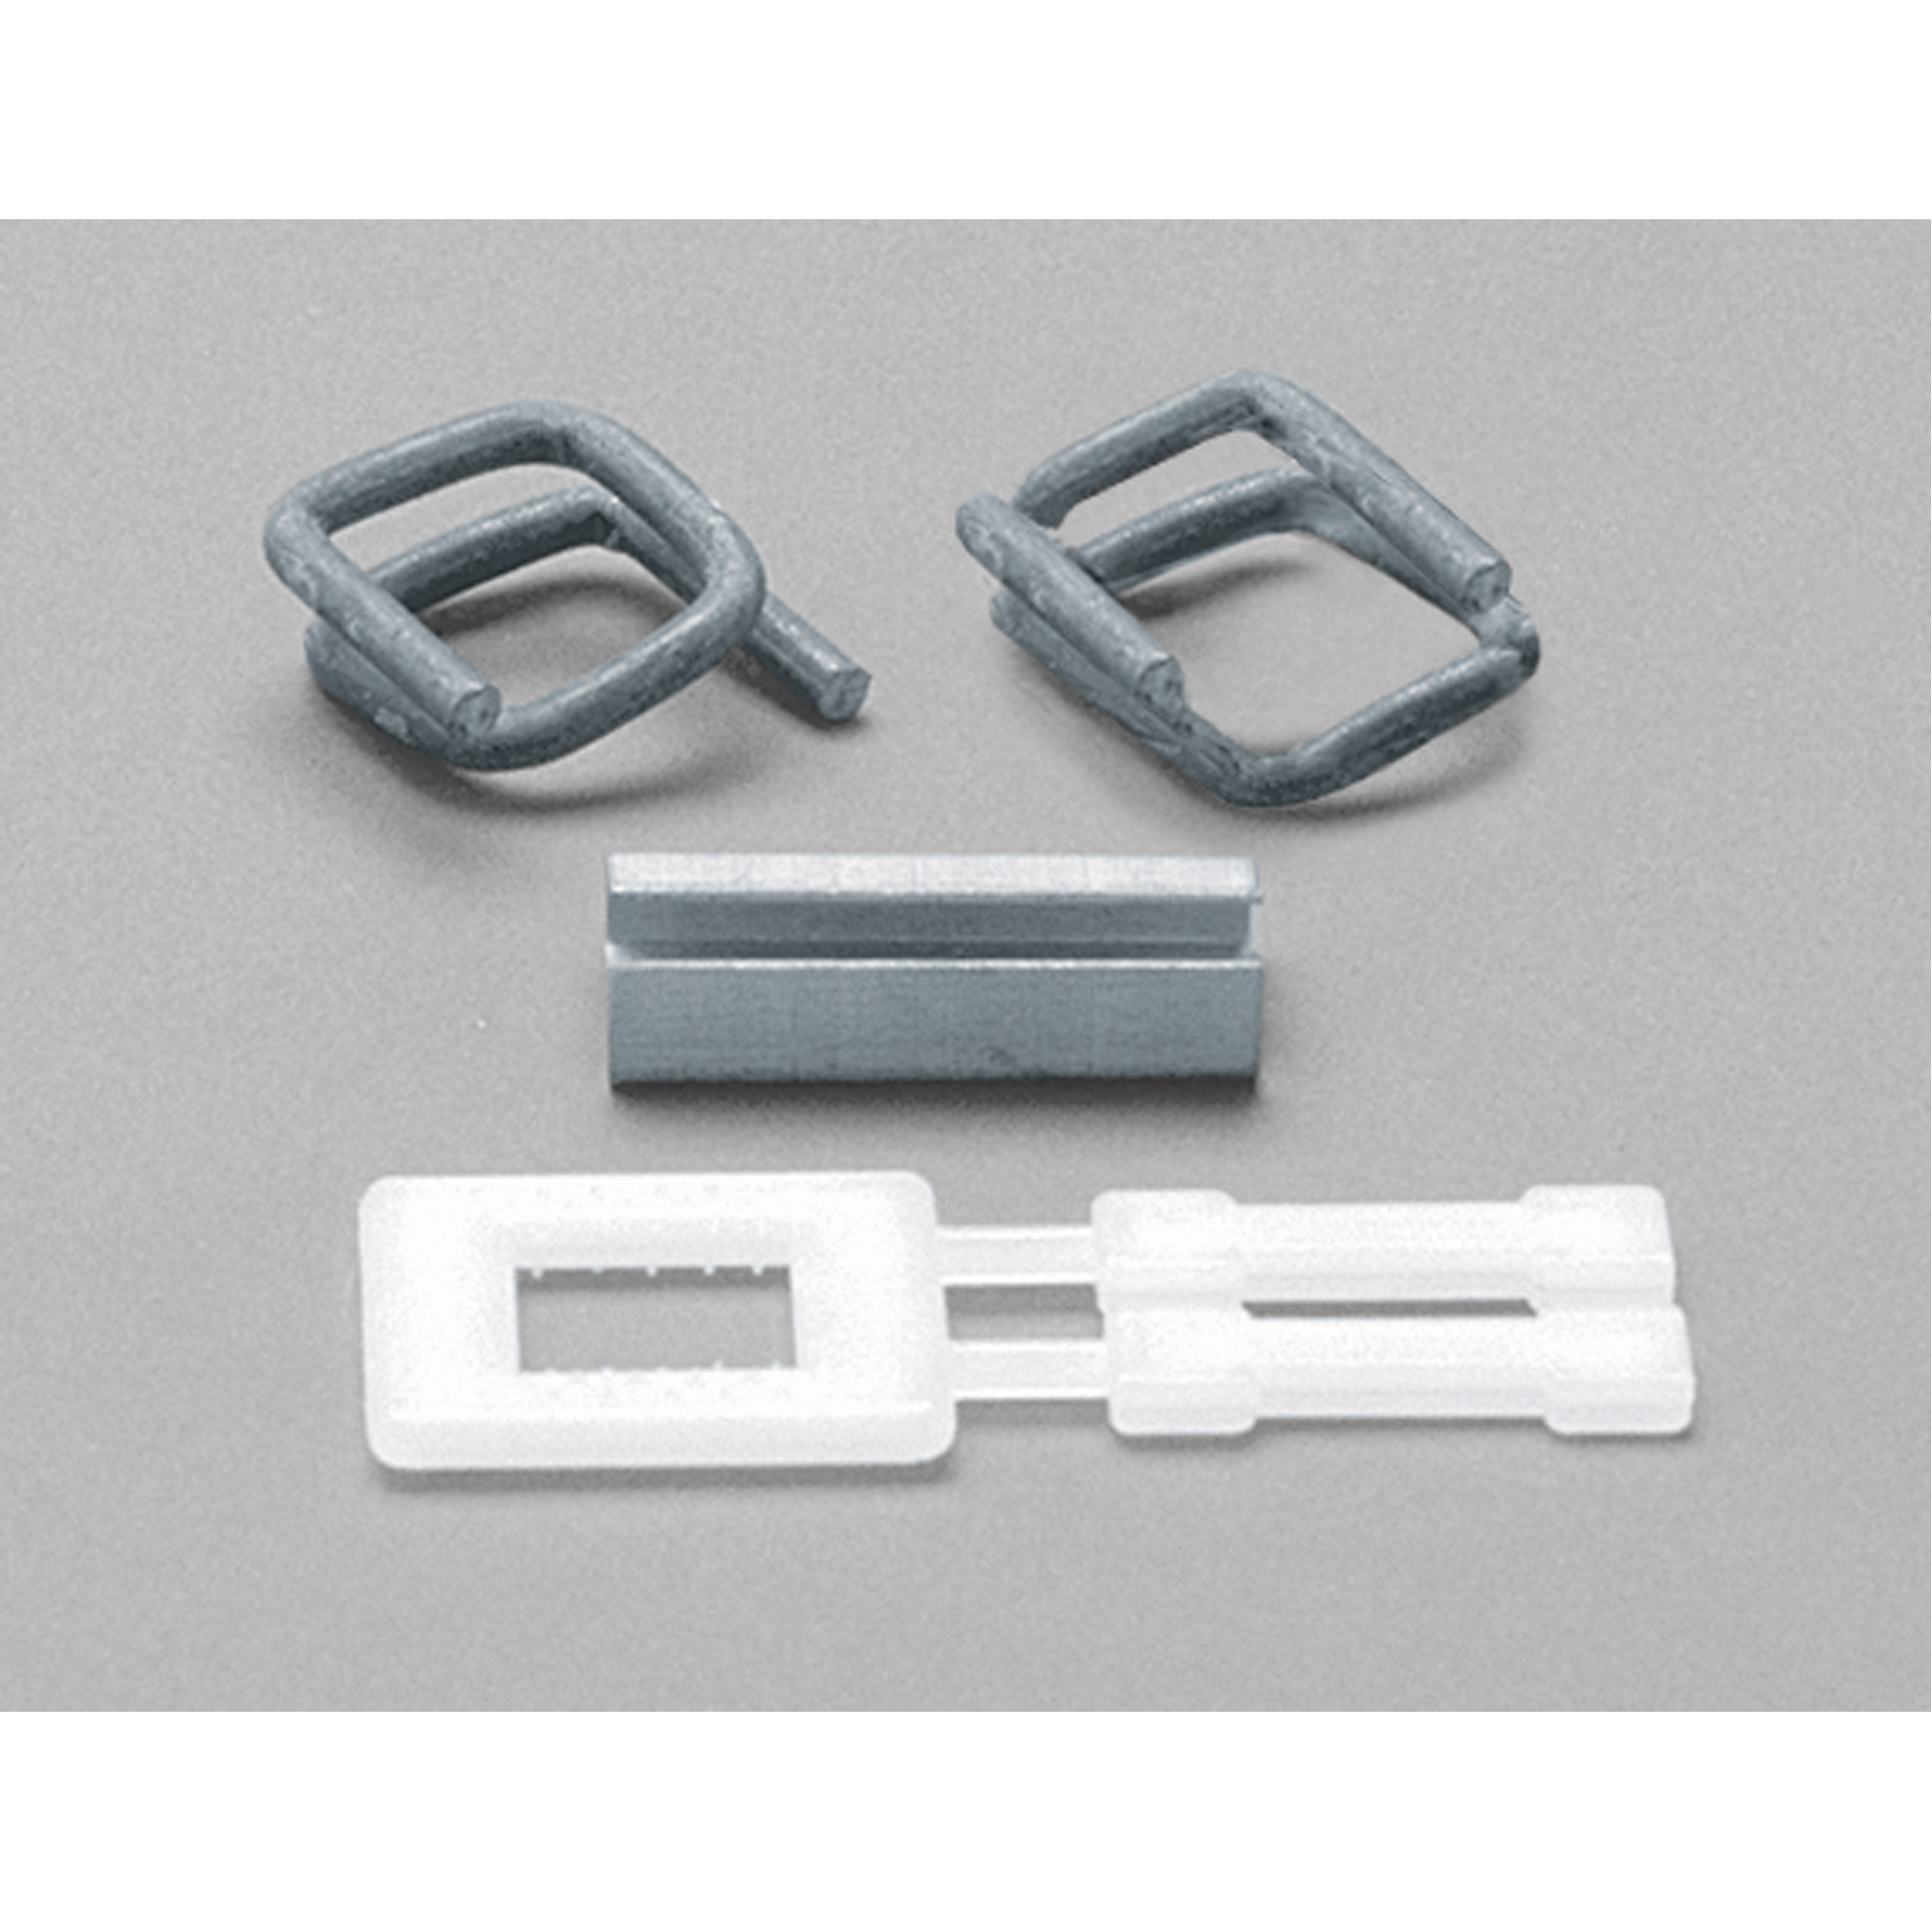 20f9ba8e043 CORDEX Seals   Buckles for Polypropylene Strapping PA498 (FPB-12 X 2 ...